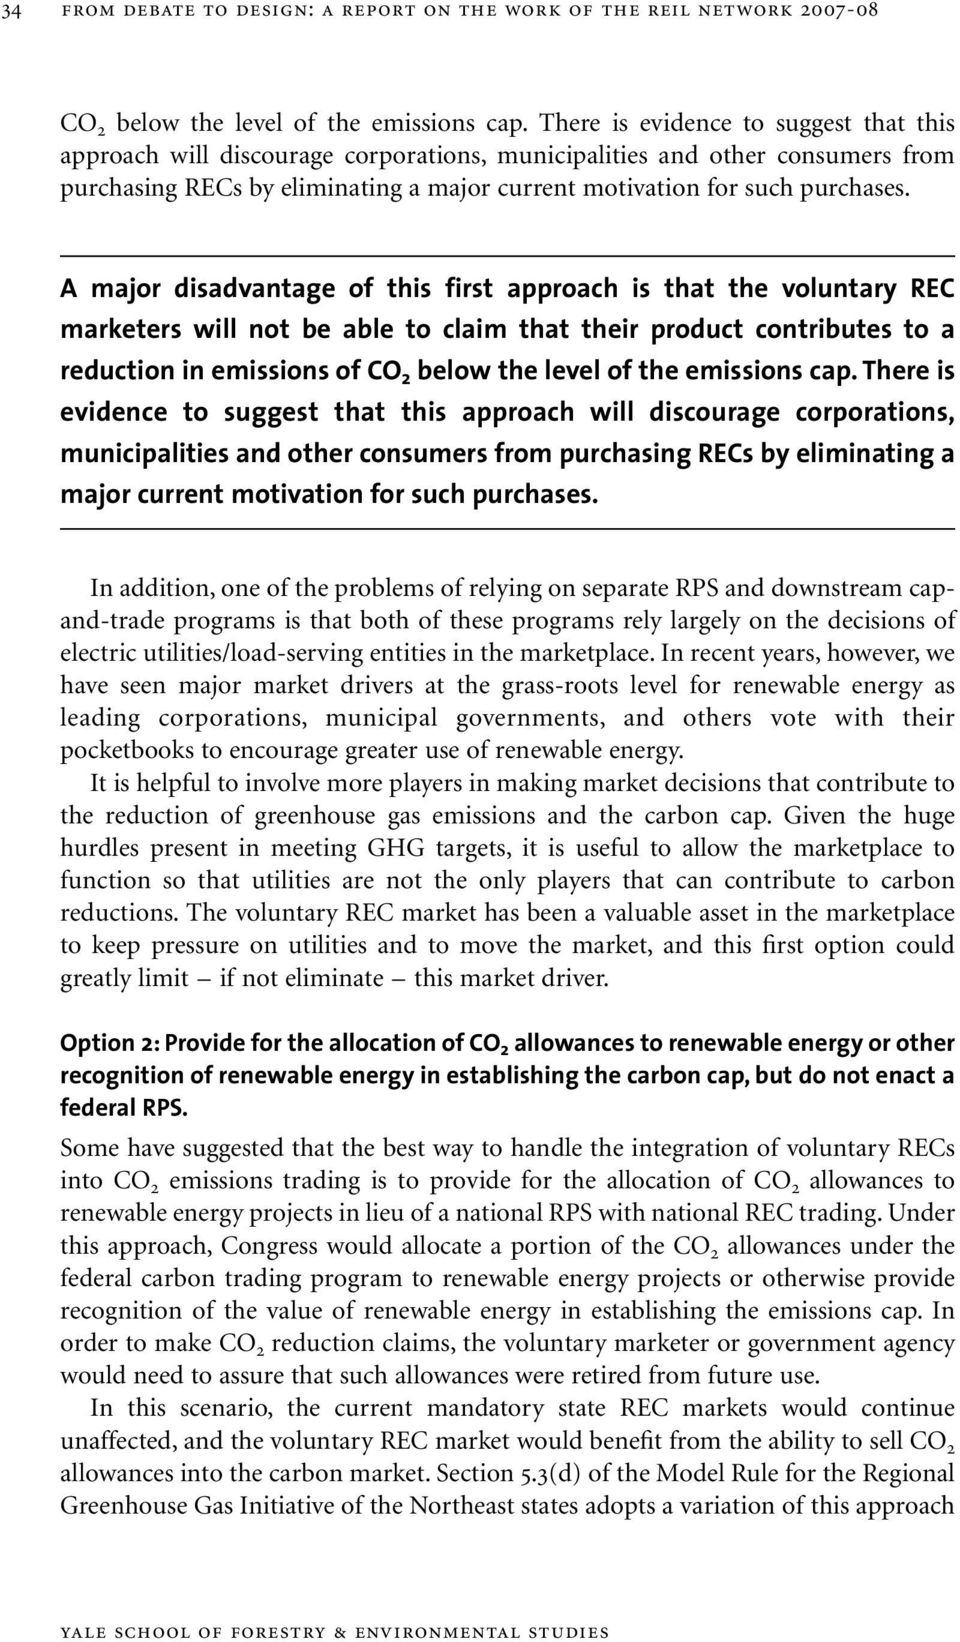 A major disadvantage of this first approach is that the voluntary REC marketers will not be able to claim that their product contributes to a reduction in emissions of CO 2 below the level of the